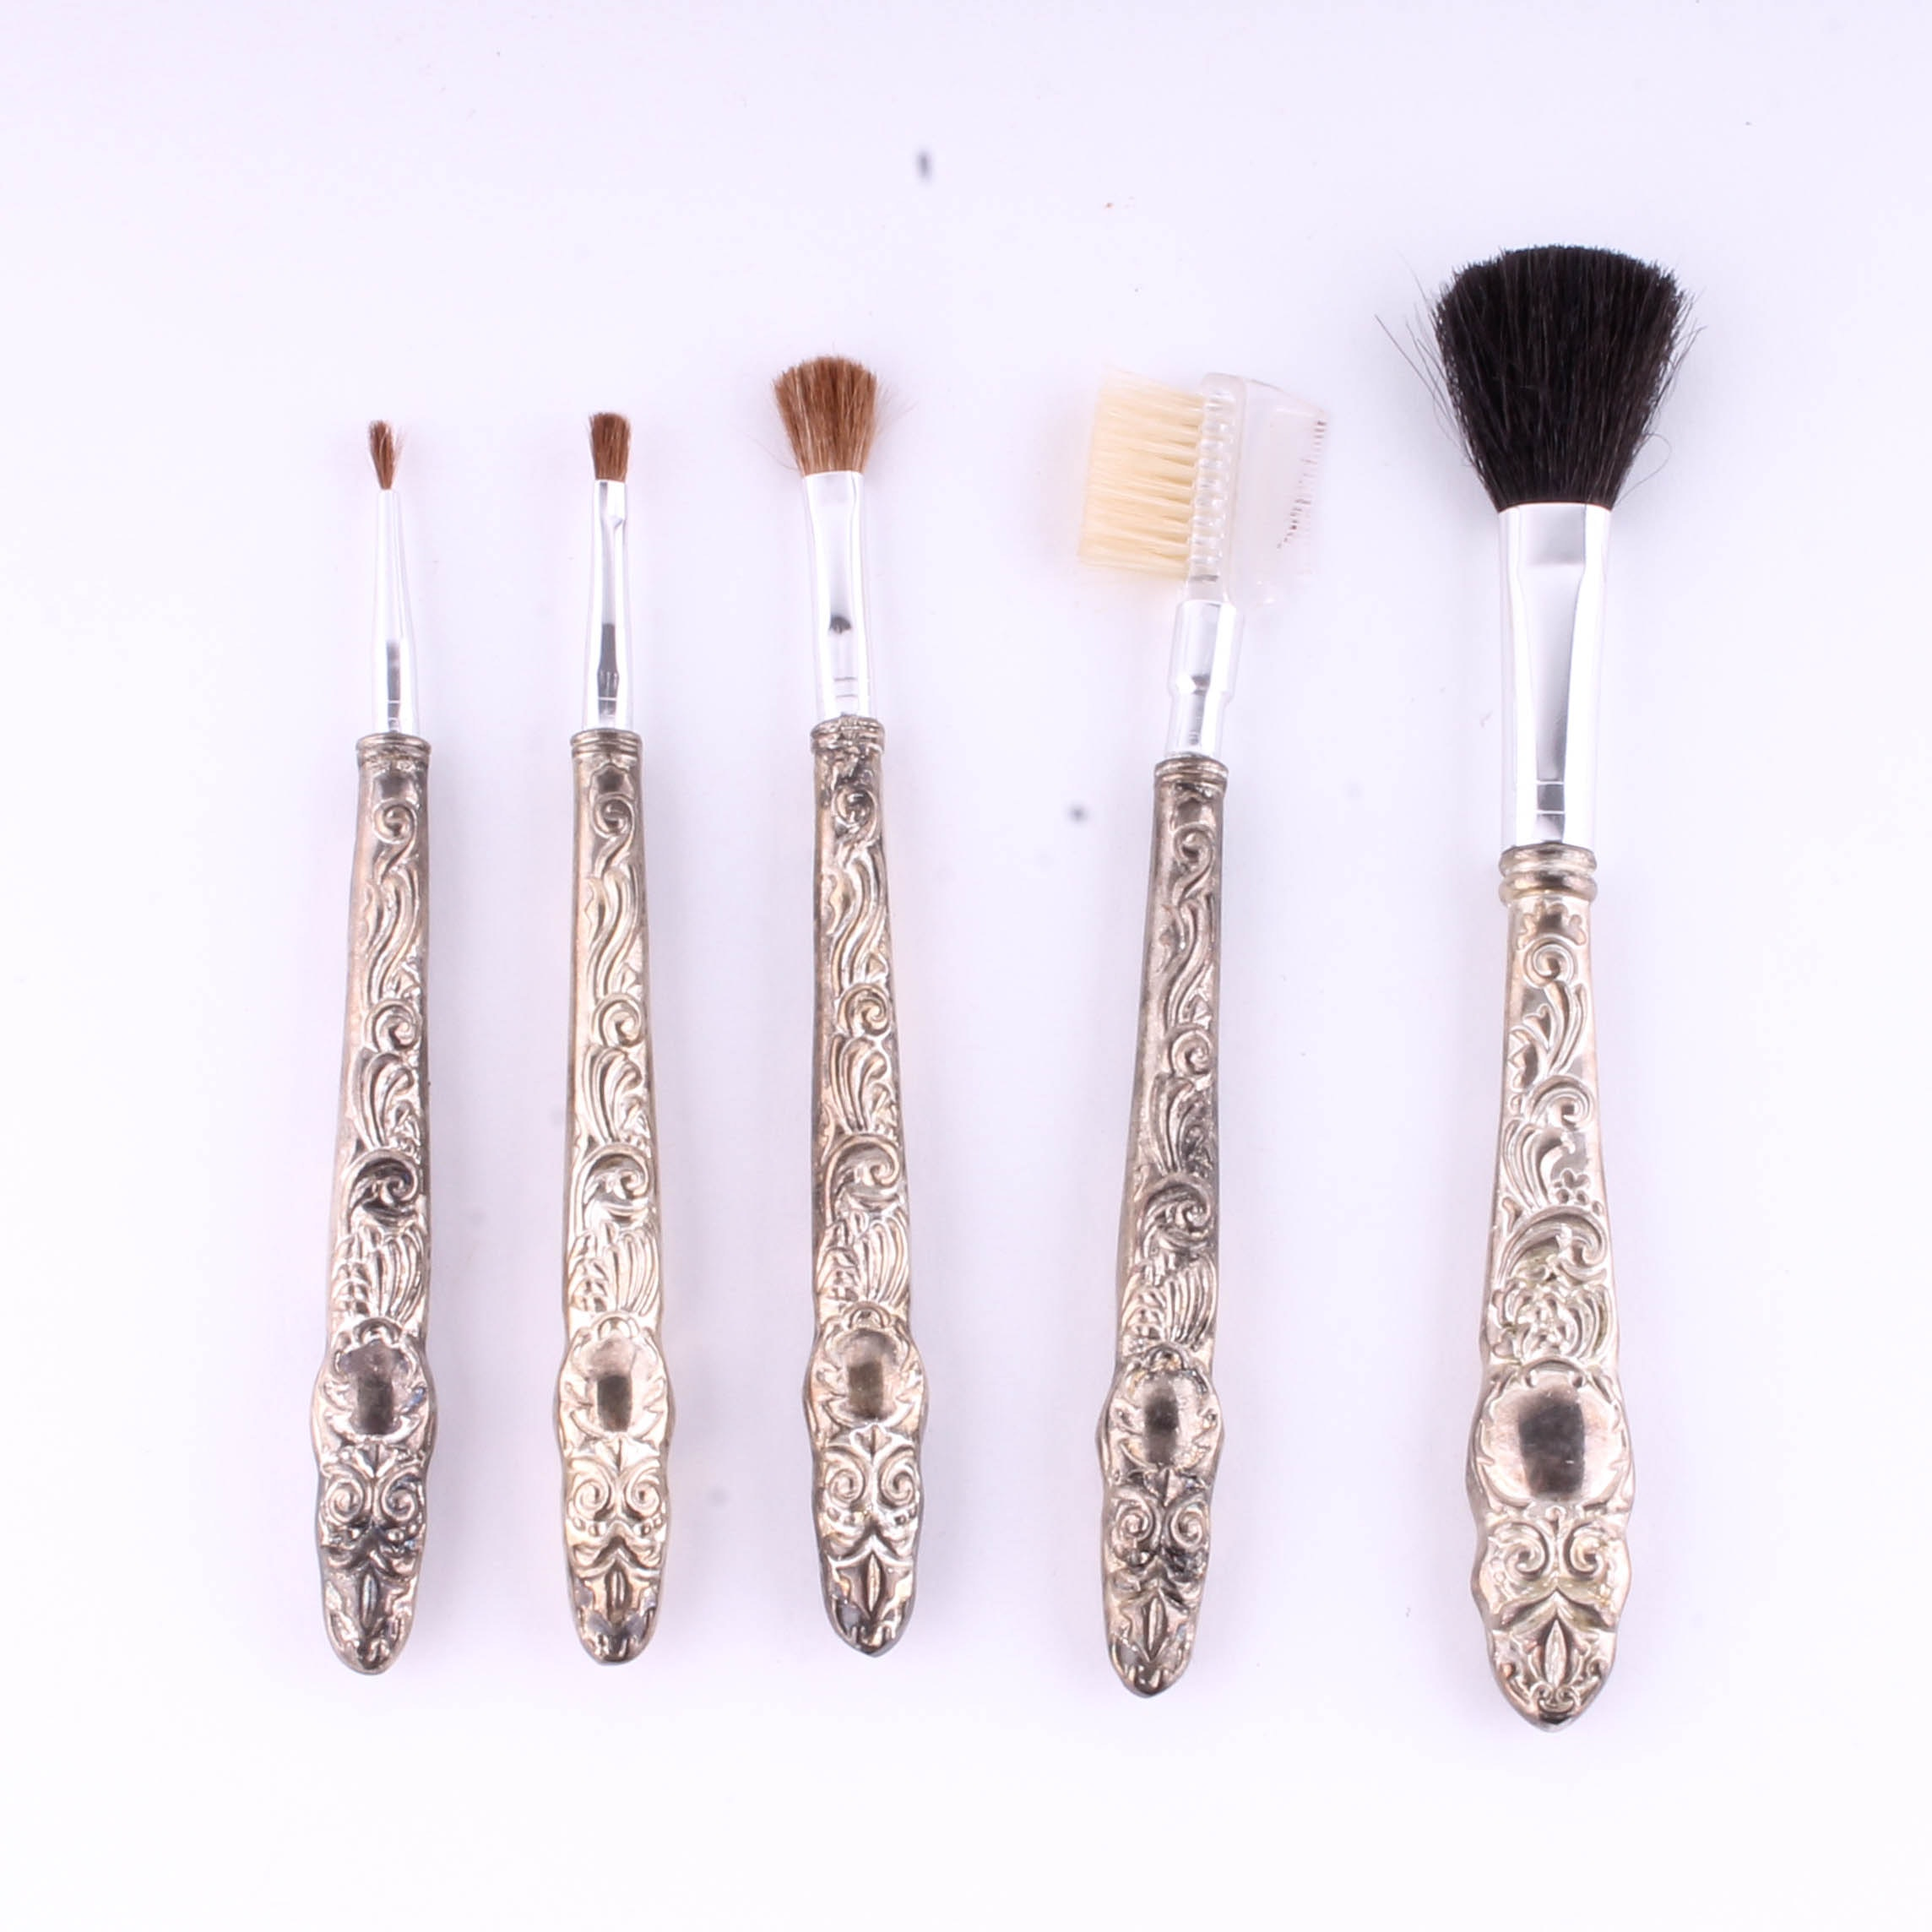 Vintage Silver Makeup Brushes Saubhaya Makeup